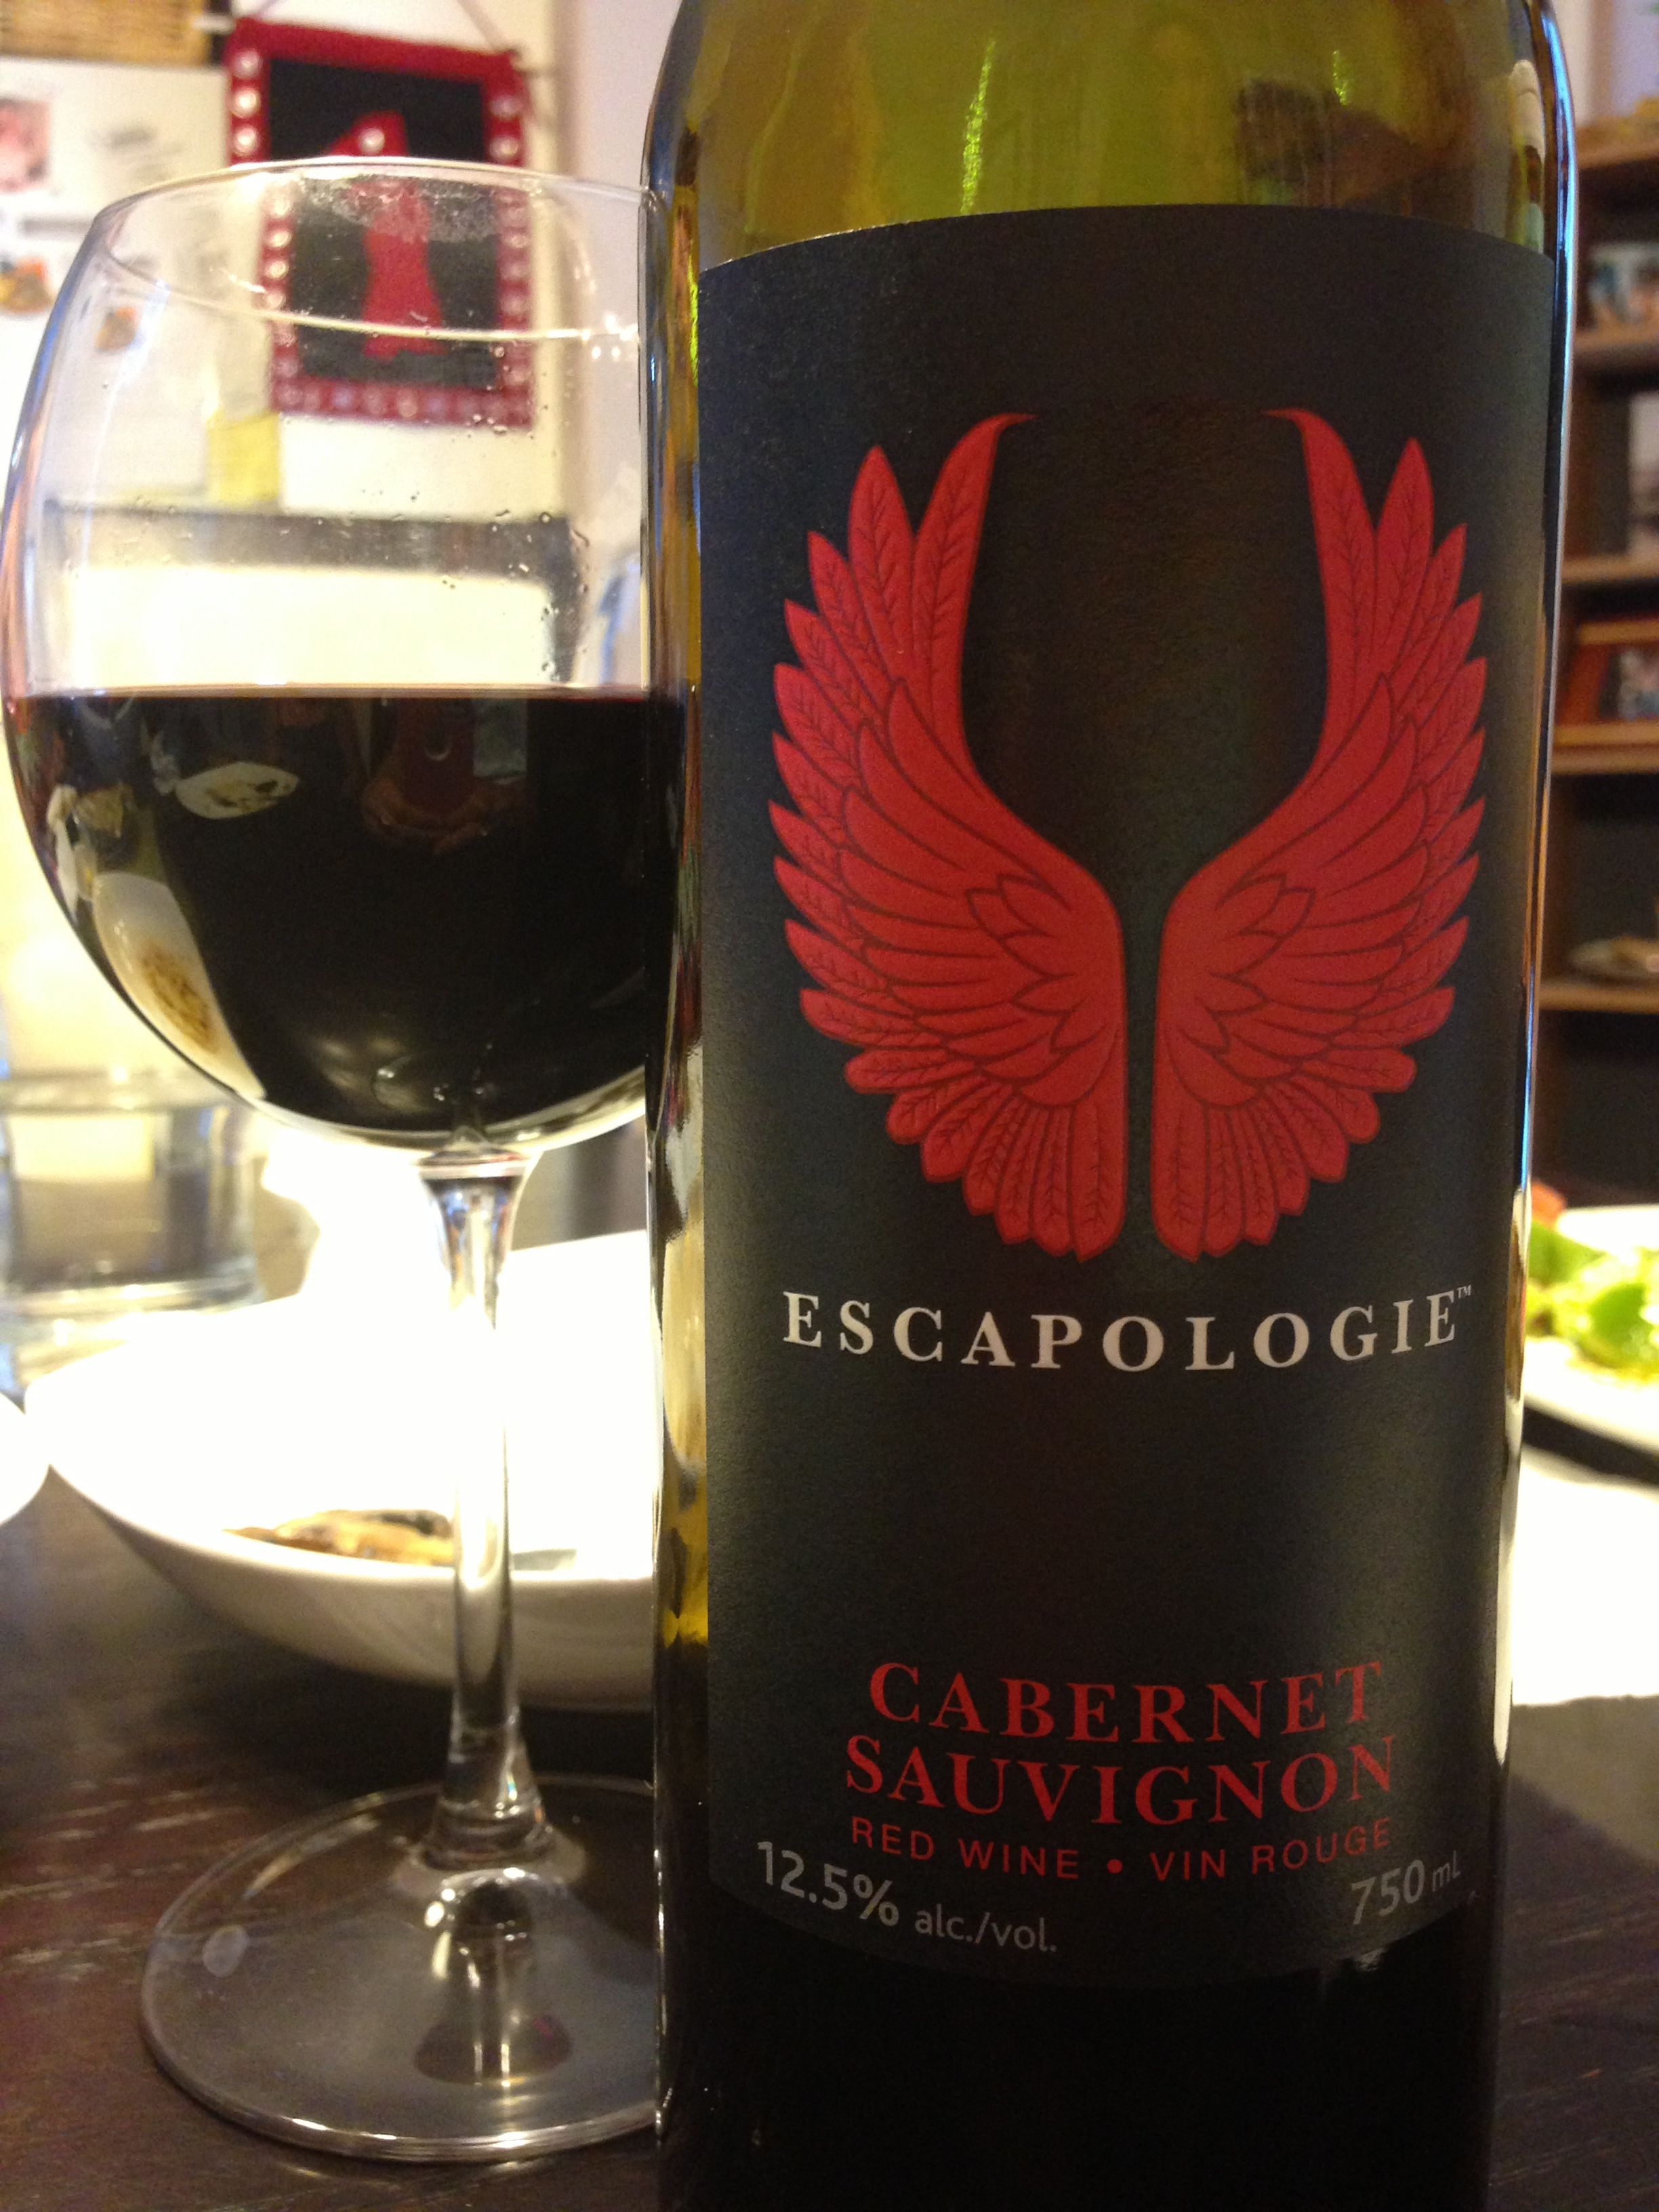 Escapologie Cabernet Sauvignon A Velvety Cab Sav With Current Blackberry Flavours With A Slight Spice U Imported Wine Red Wine Cabernet Sauvignon